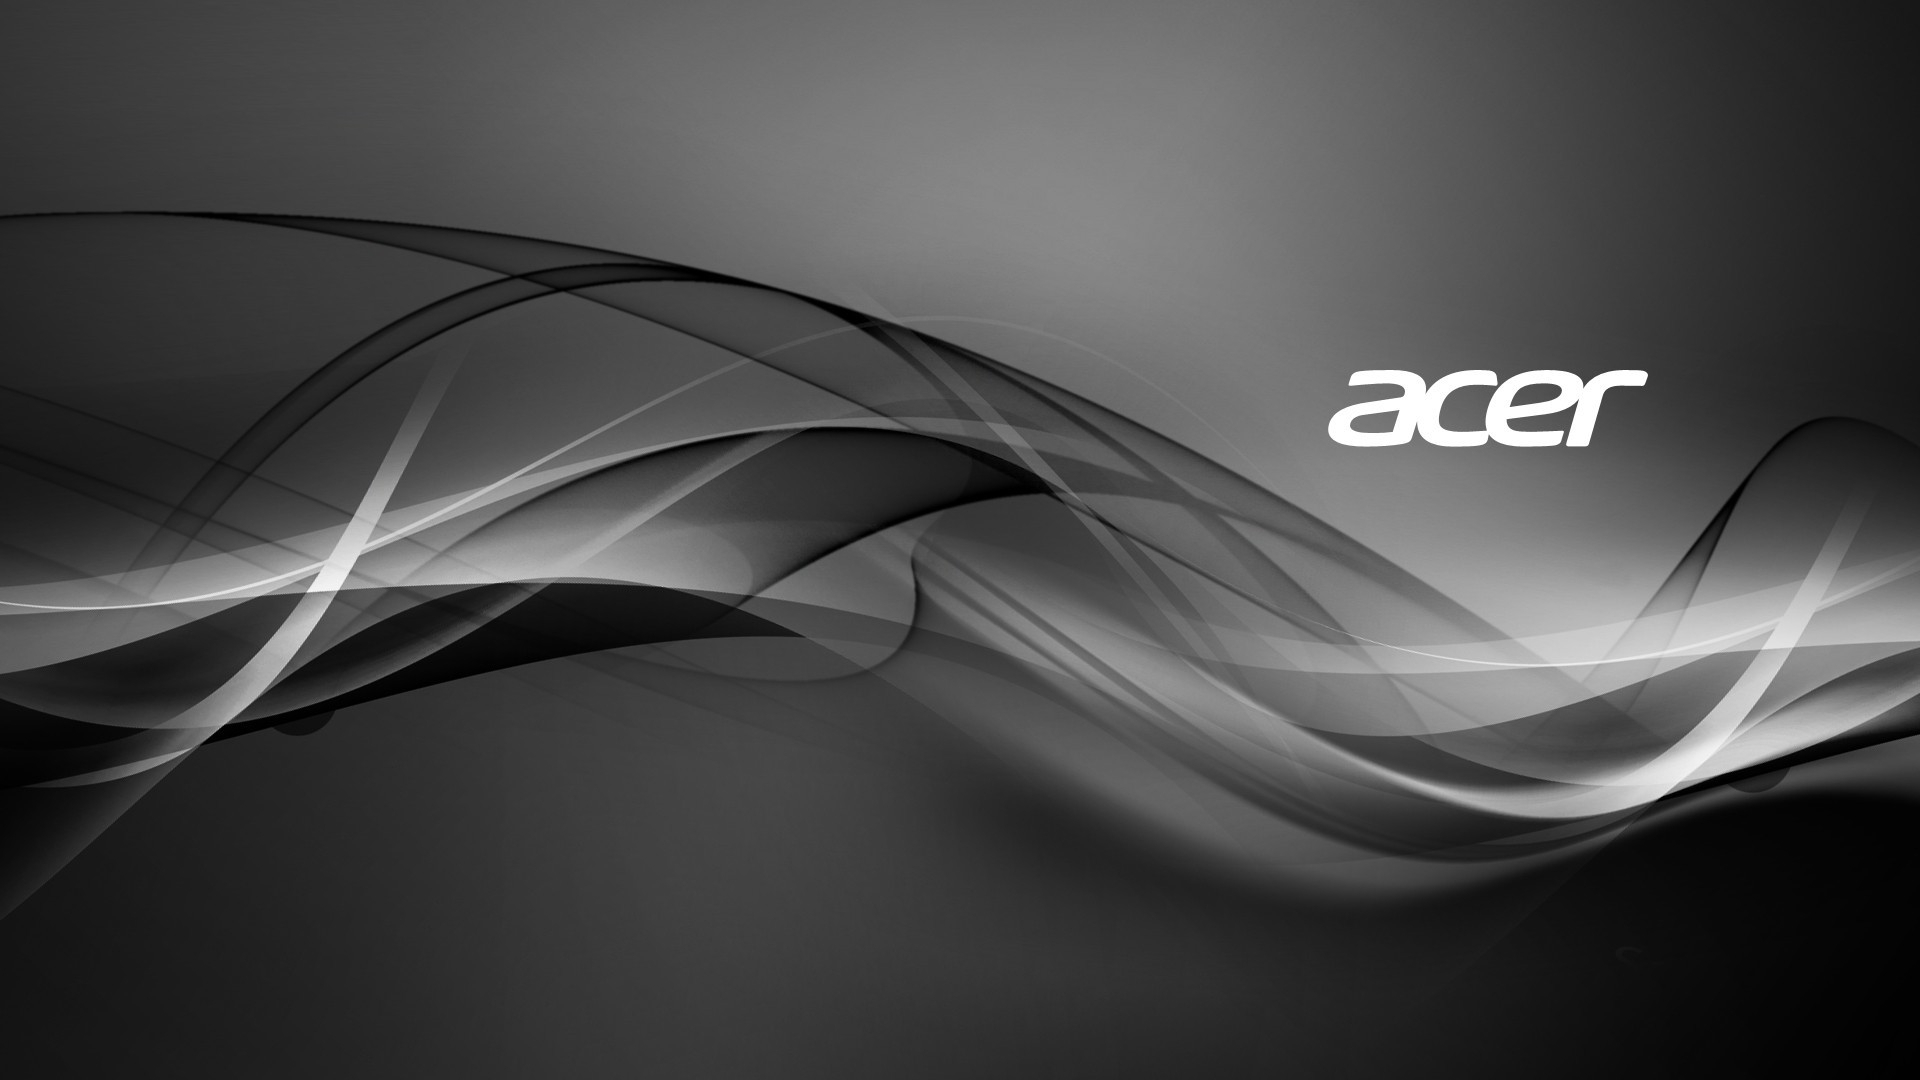 acer wallpaper 1080p hd 1920x1080 (64+ images)